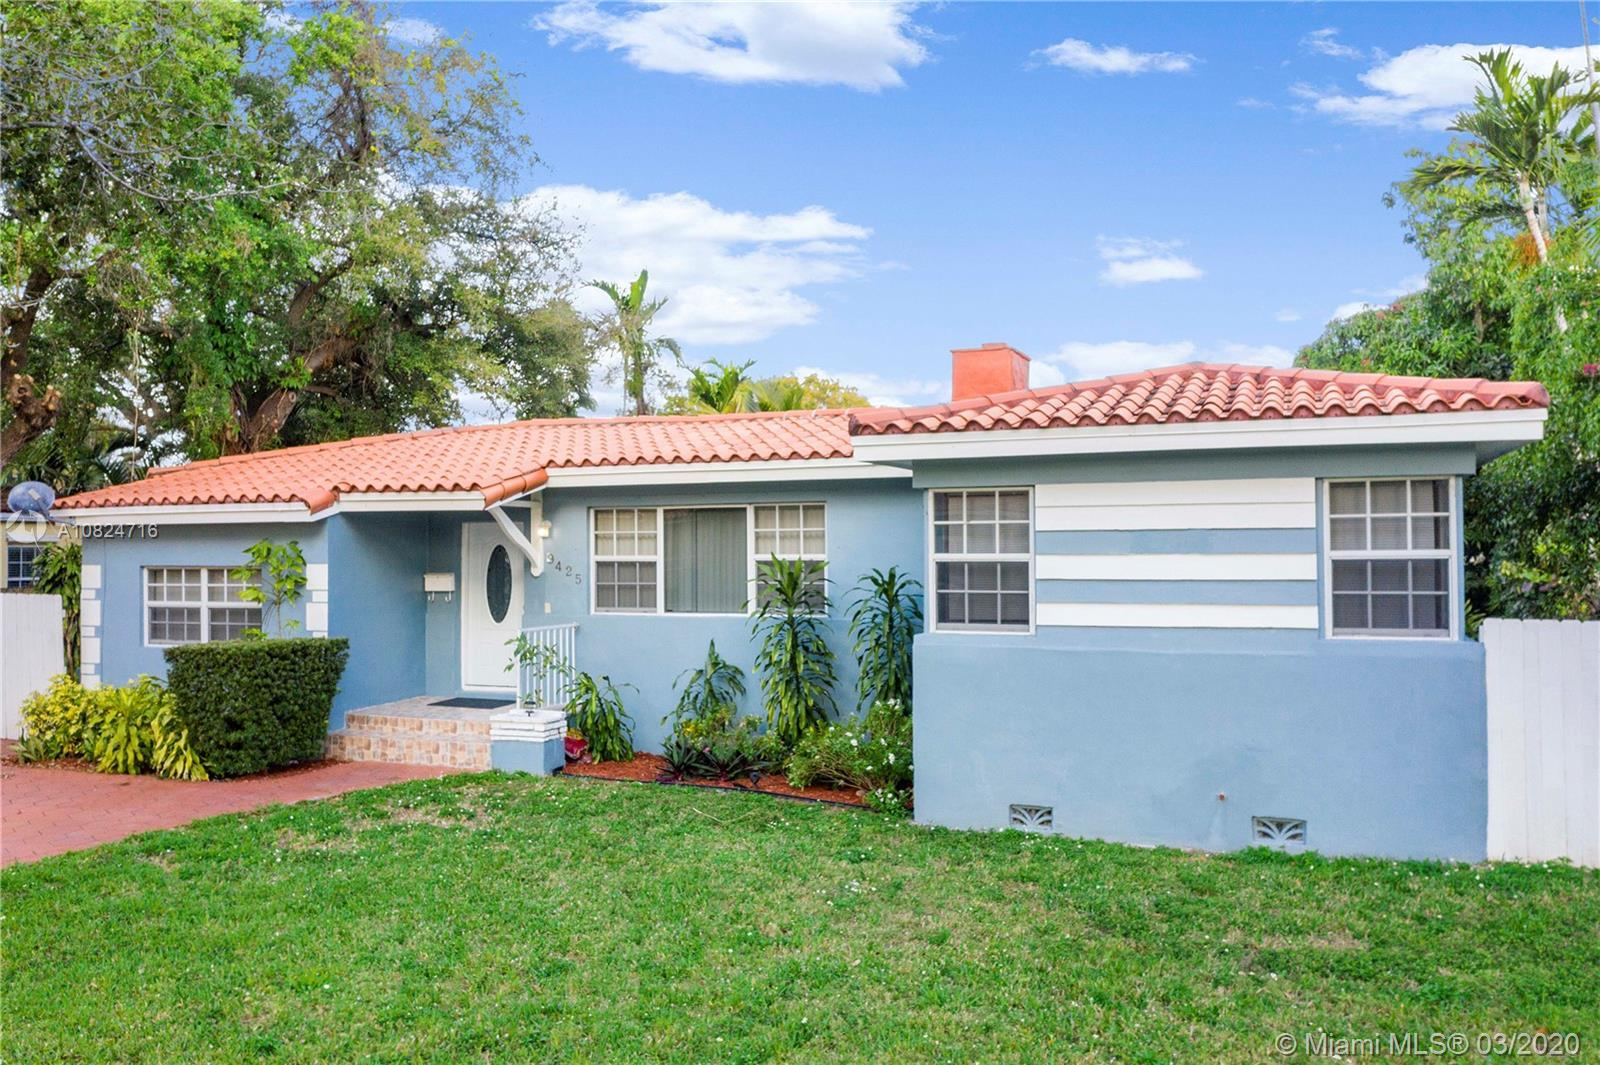 Classic style meets modern. Welcome to this beautiful starter home in Miami Shores. Come in to be am